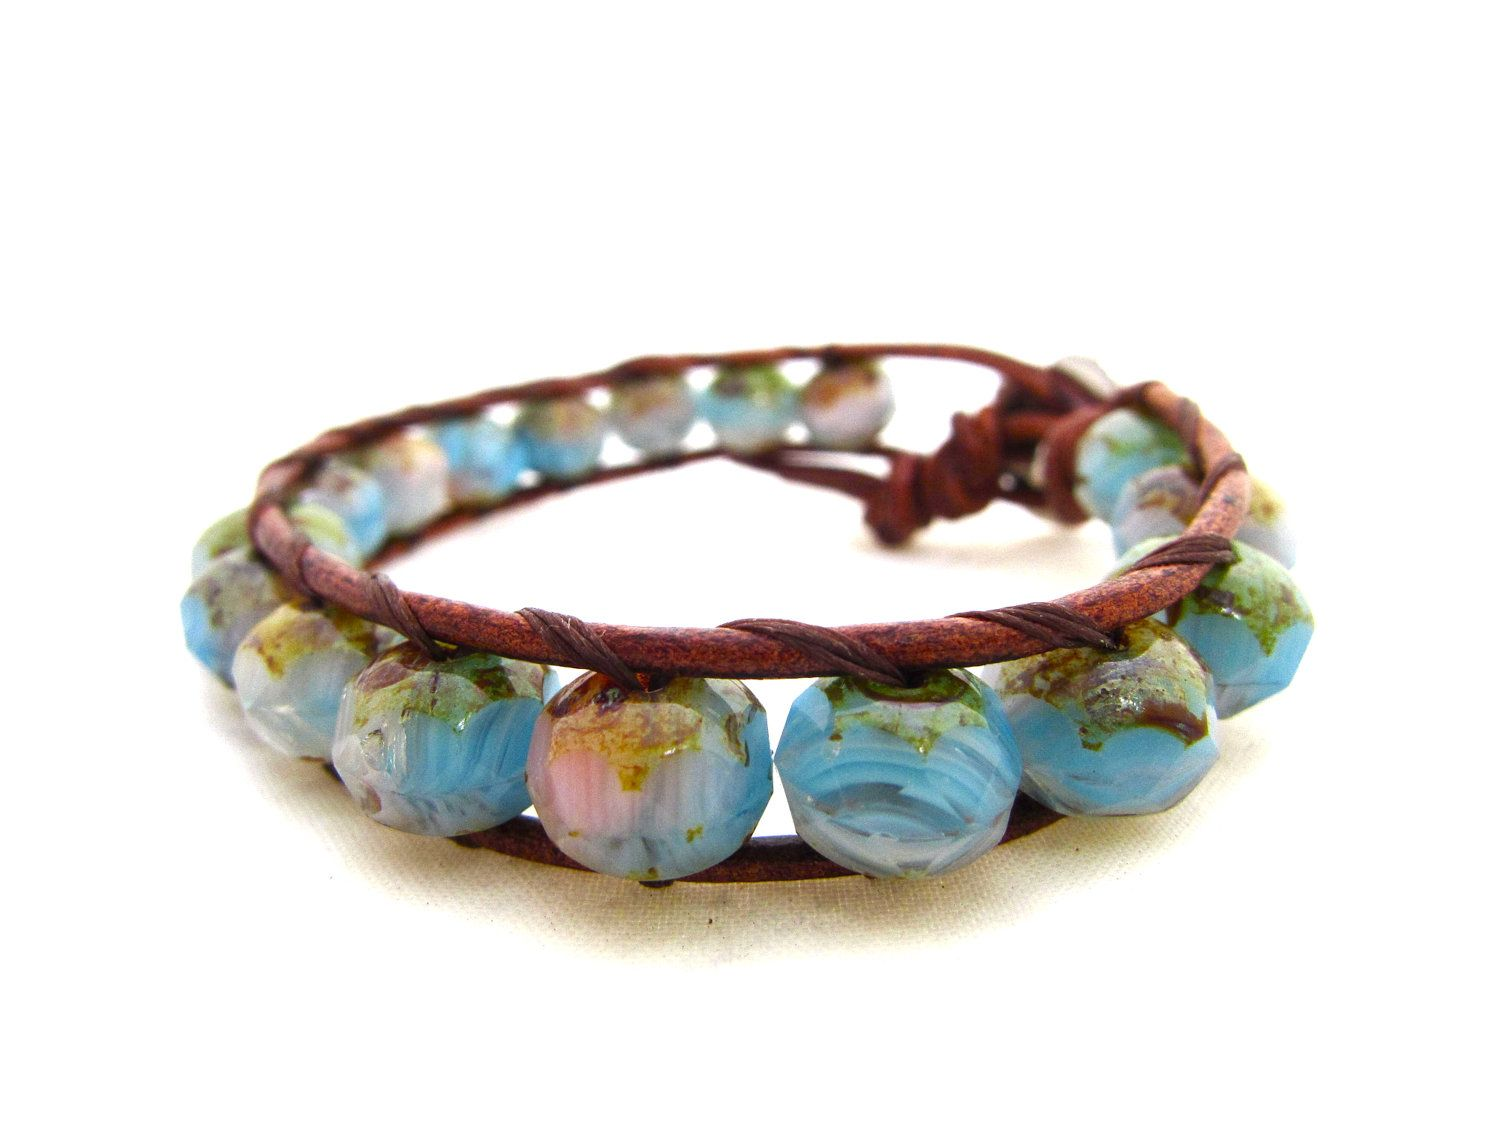 Cottage Chic Beach Wrap Bracelet HandMade on Maui, Hawaii. Opalescent Picasso Czech Glass With Flower Button. Pink Aqua Brown and Green. $42.00, via Etsy.